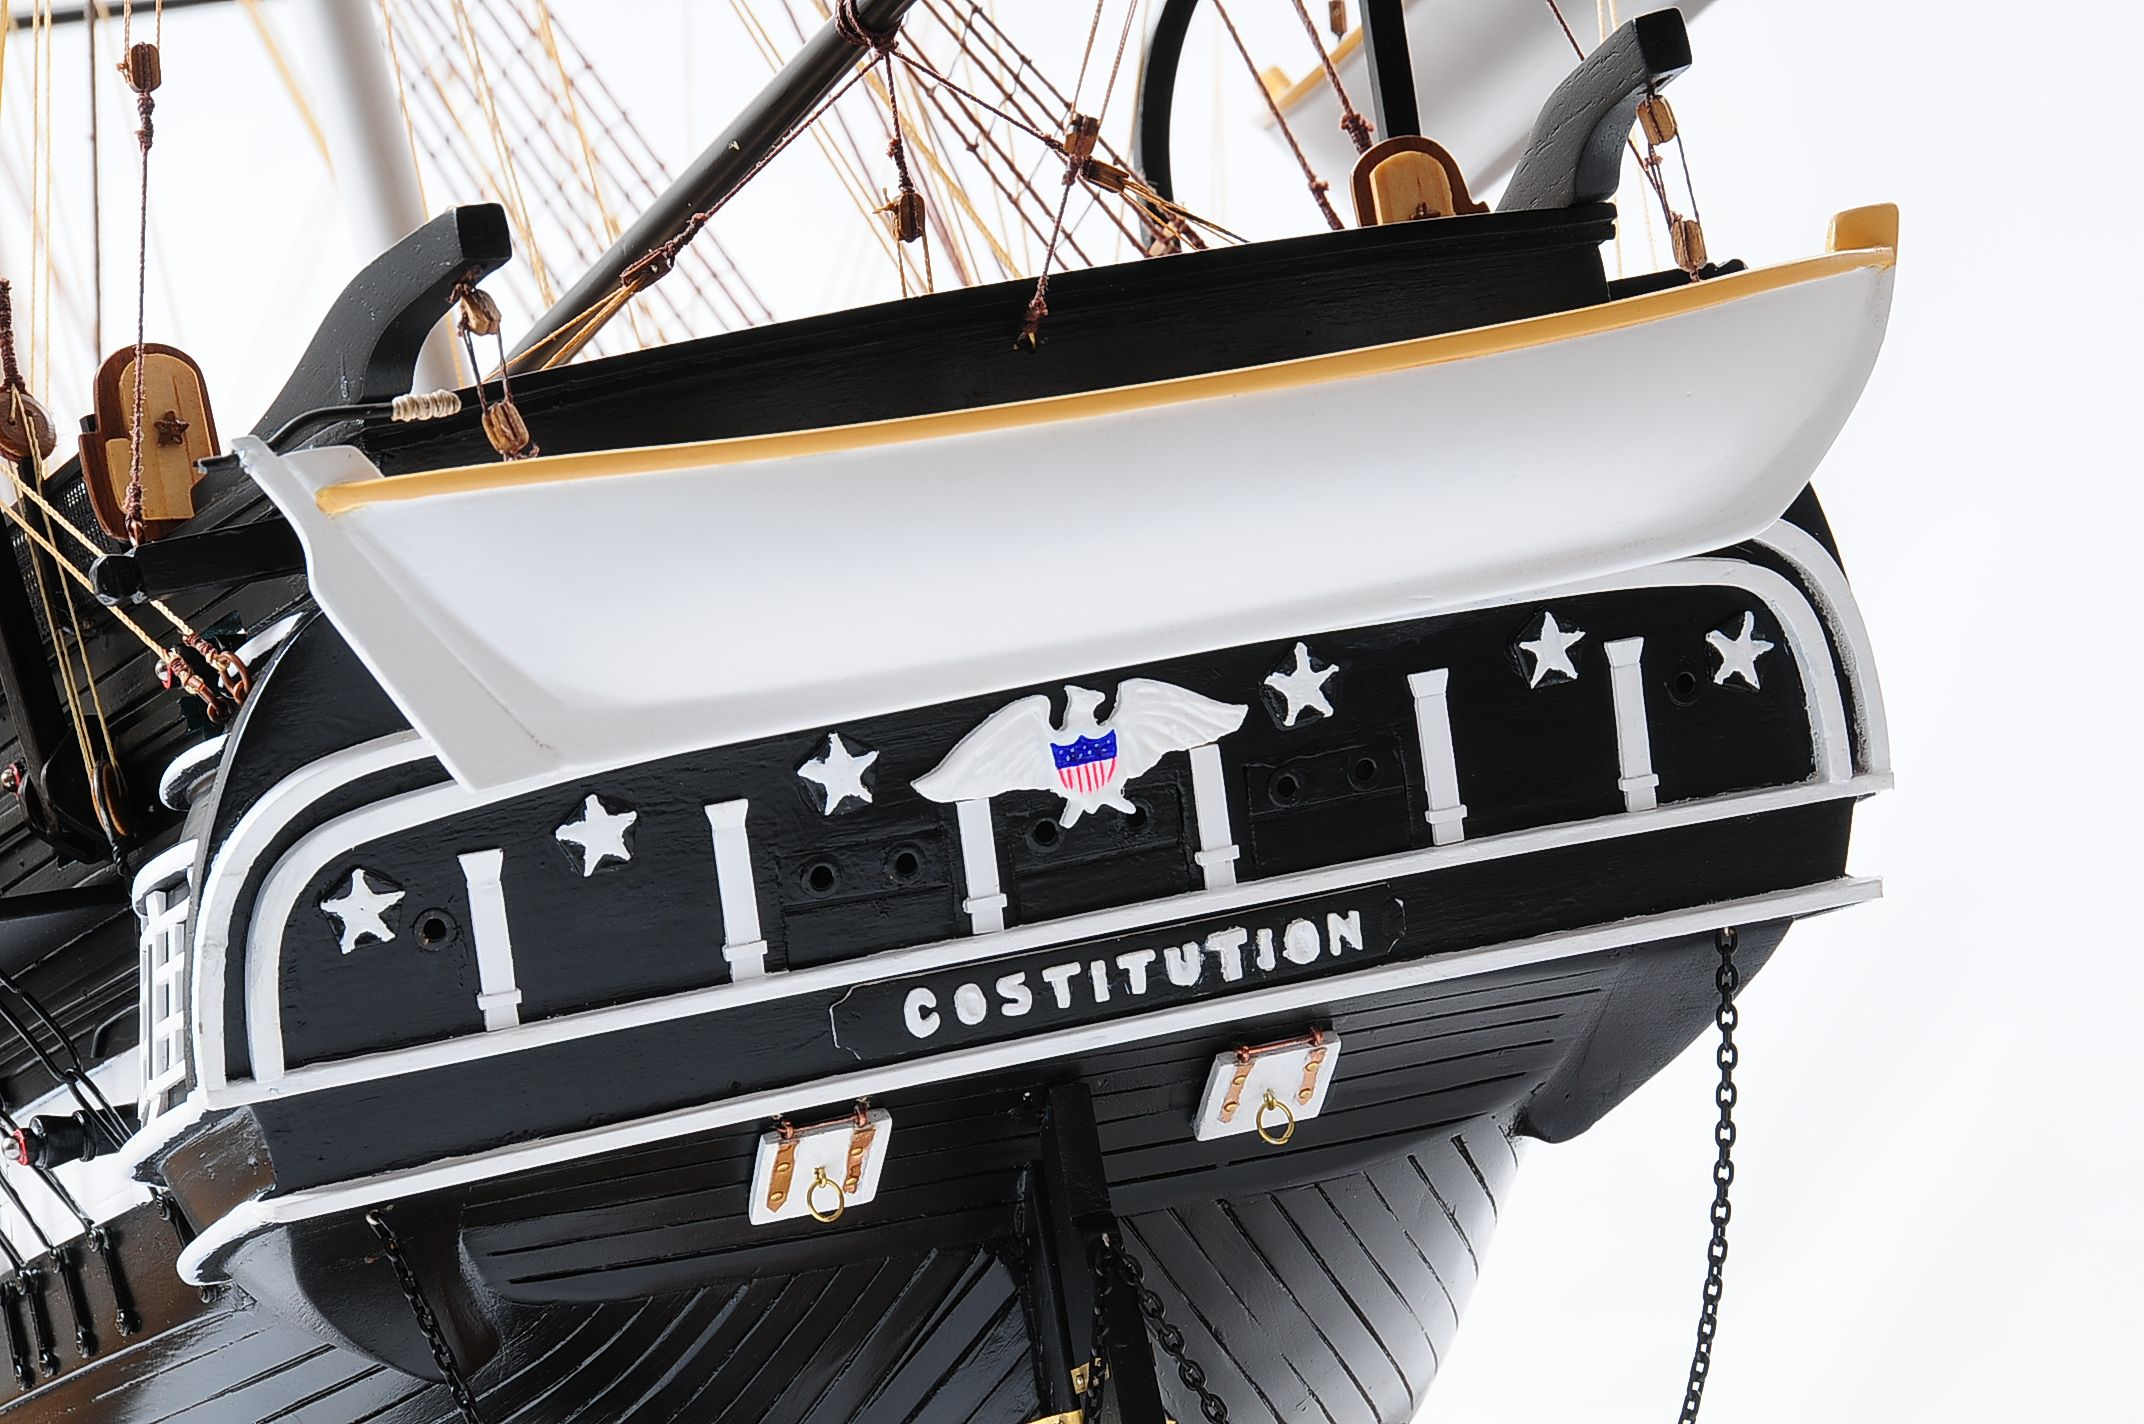 1258-7879-USS-Constitution-Model-Ship-Premier-Range